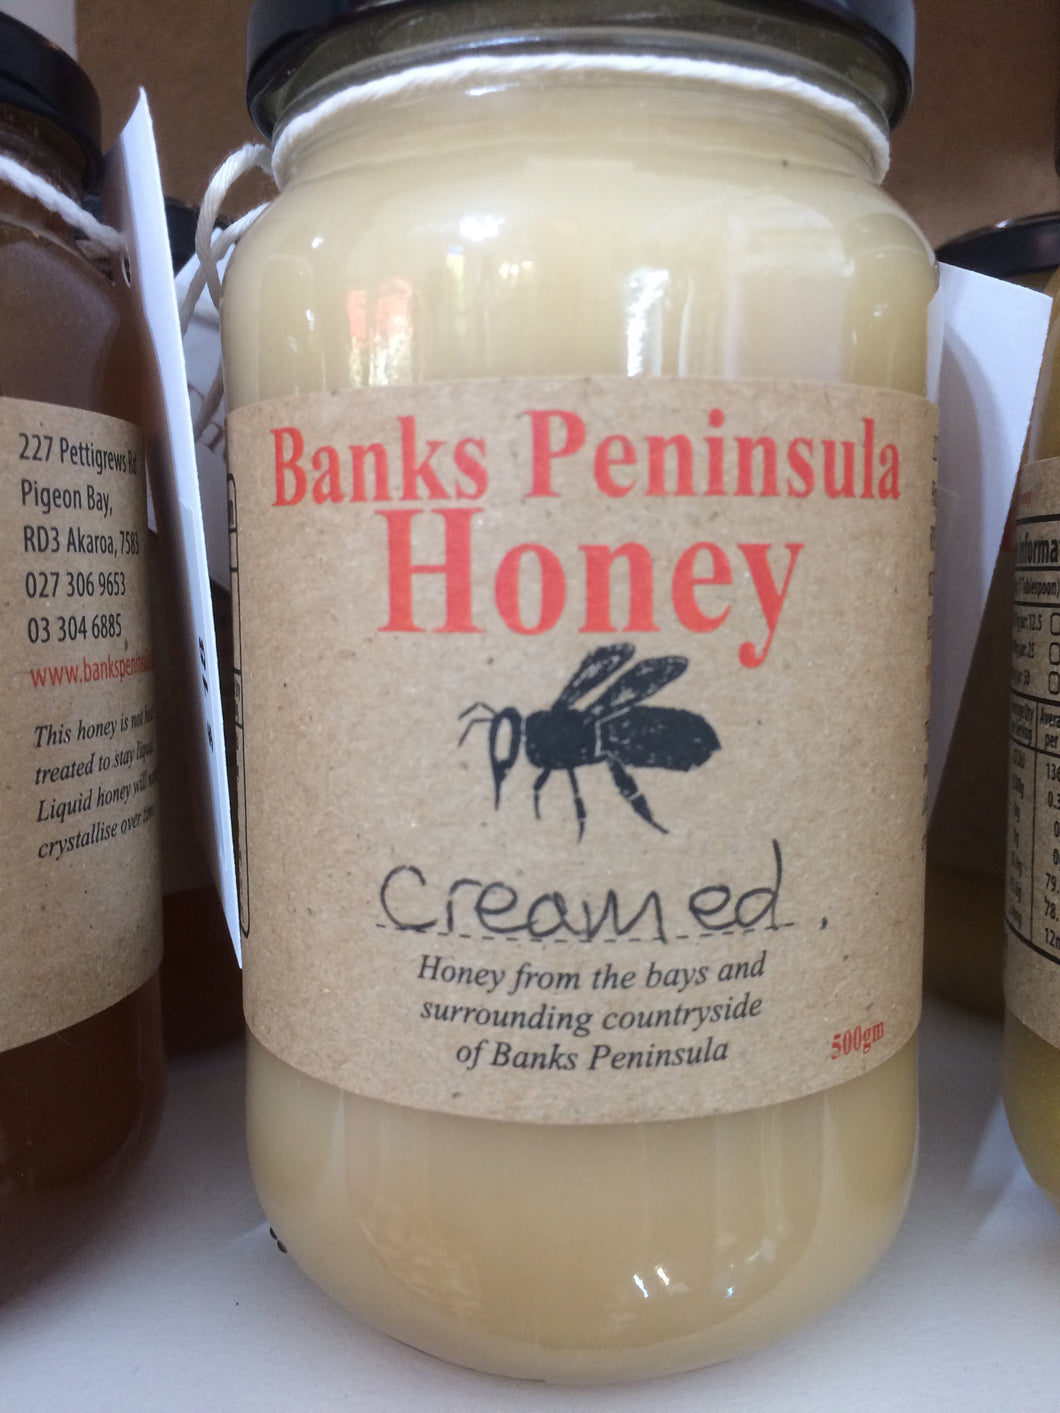 Banks Peninsula honey - Creamed